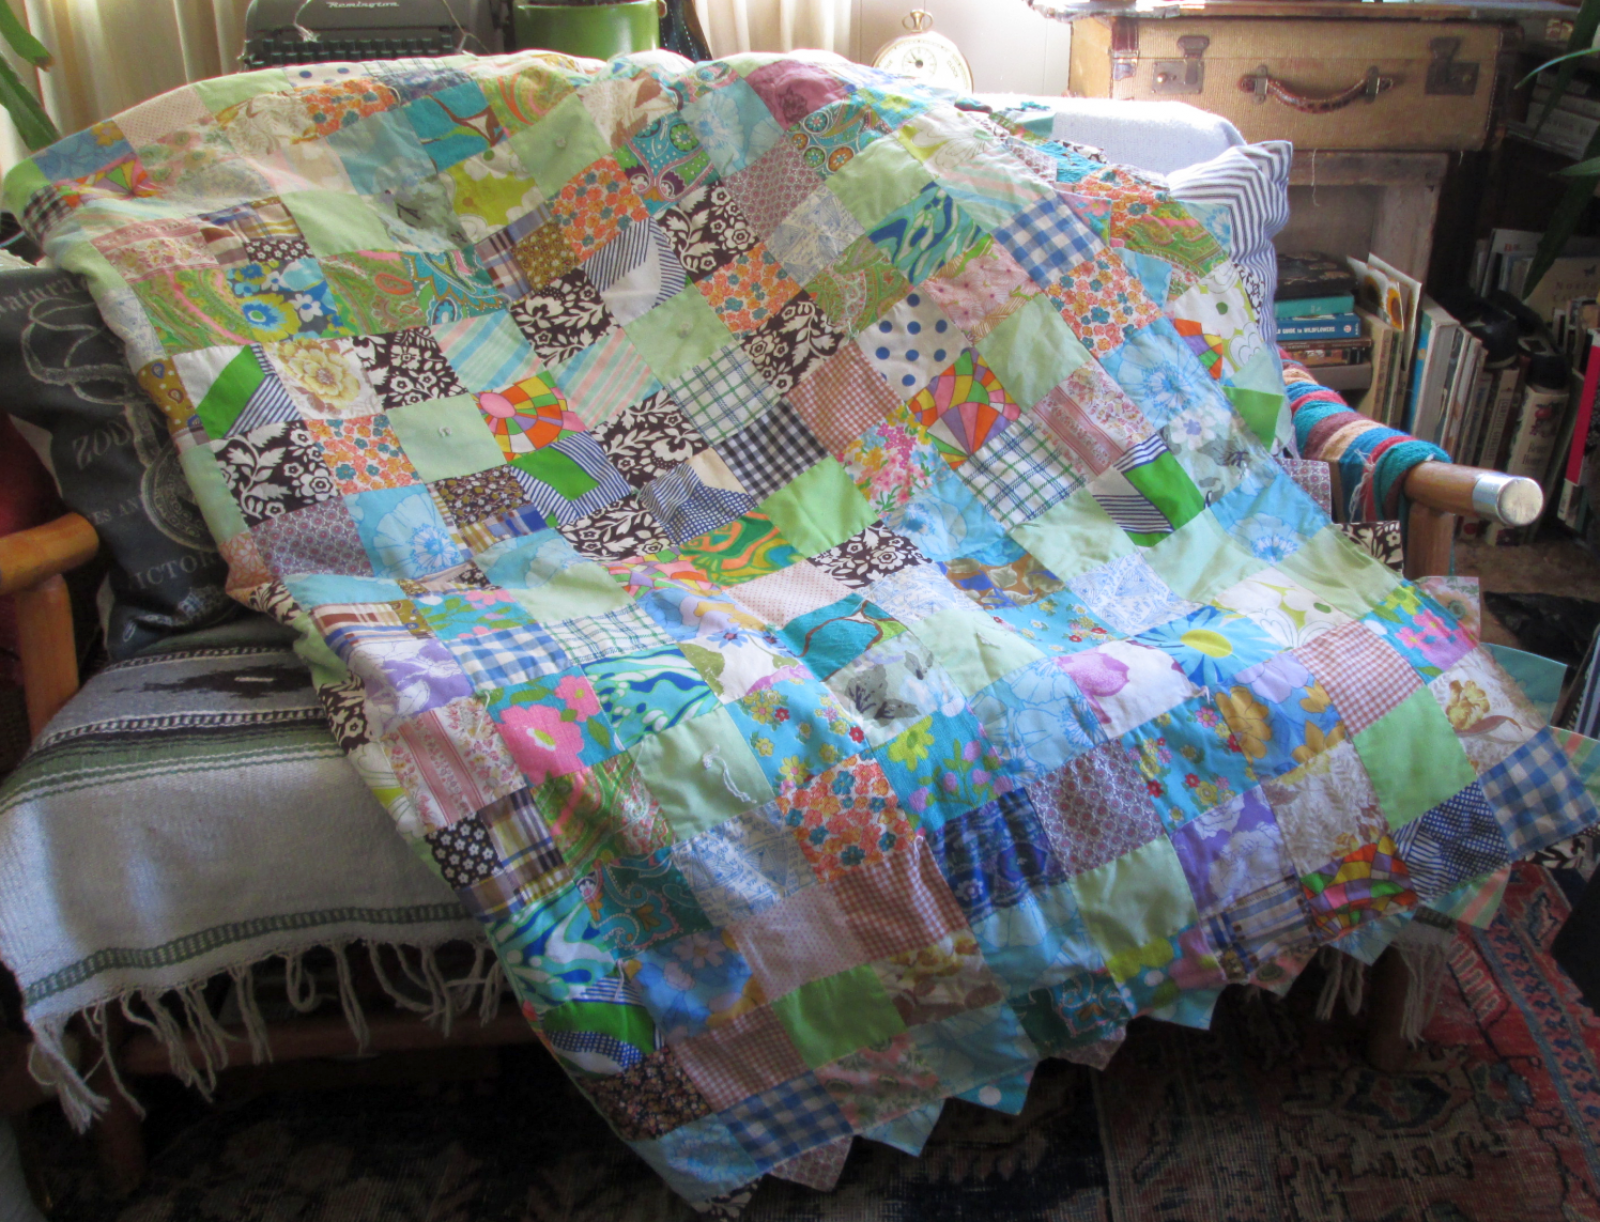 Pink Calico Vintage Quilt Pastels Blue and Pink Patchwork print quilt 60s  and 70s floral Cottage bedspread Twin or Double Calico quilt